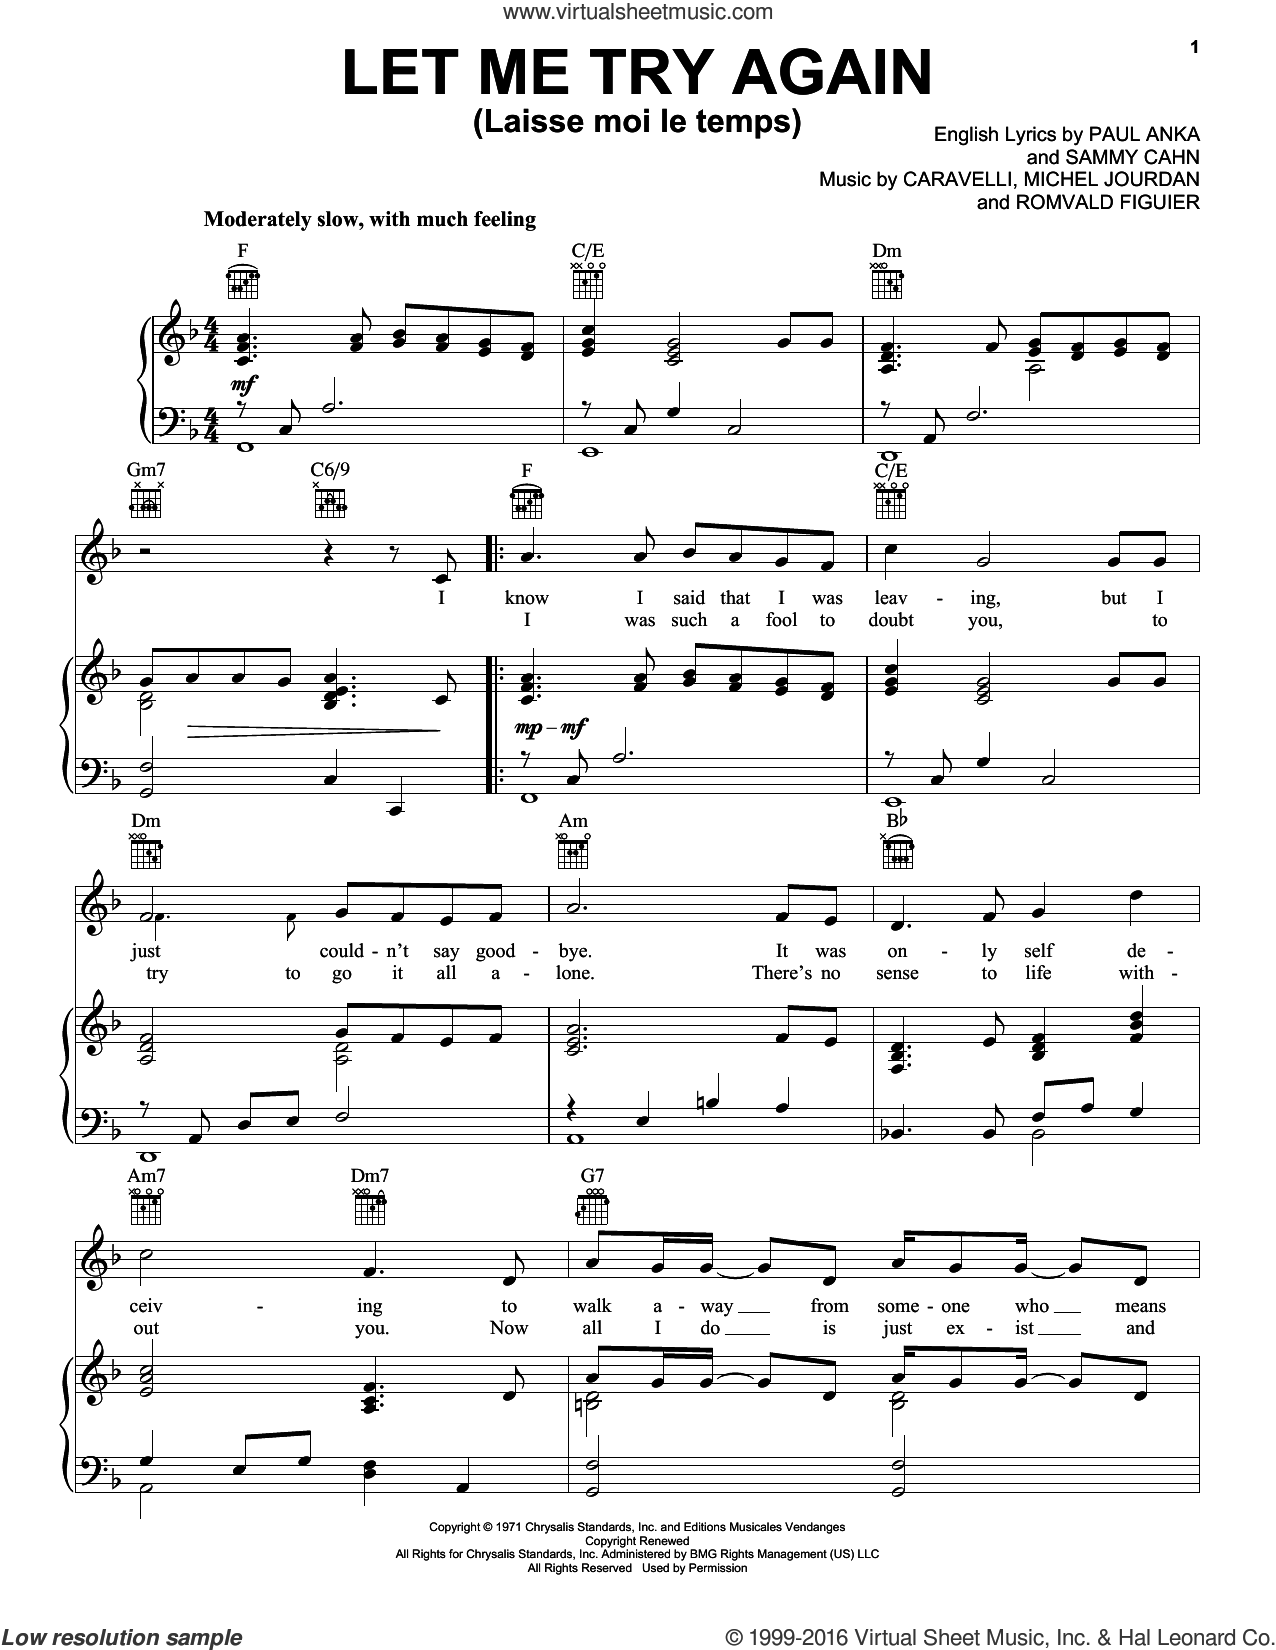 Let Me Try Again (Laisse Moi Le Temps) sheet music for voice, piano or guitar by Sammy Cahn, Frank Sinatra and Paul Anka. Score Image Preview.